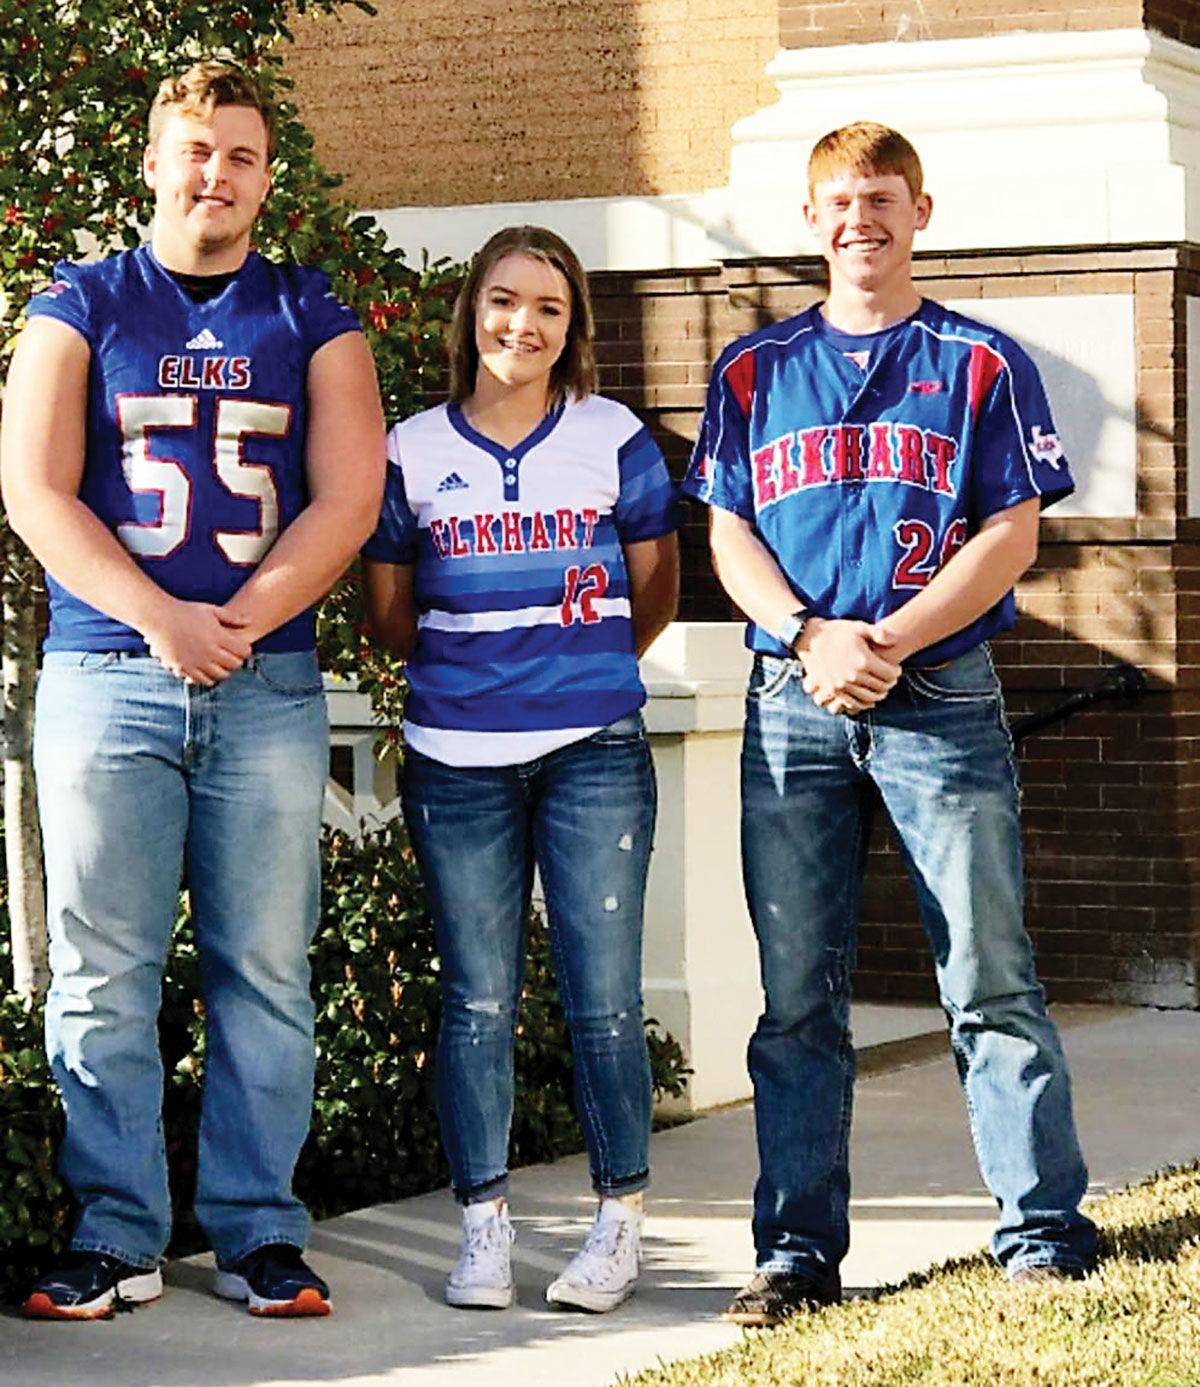 Elkhart High School trio of FCA all-stars